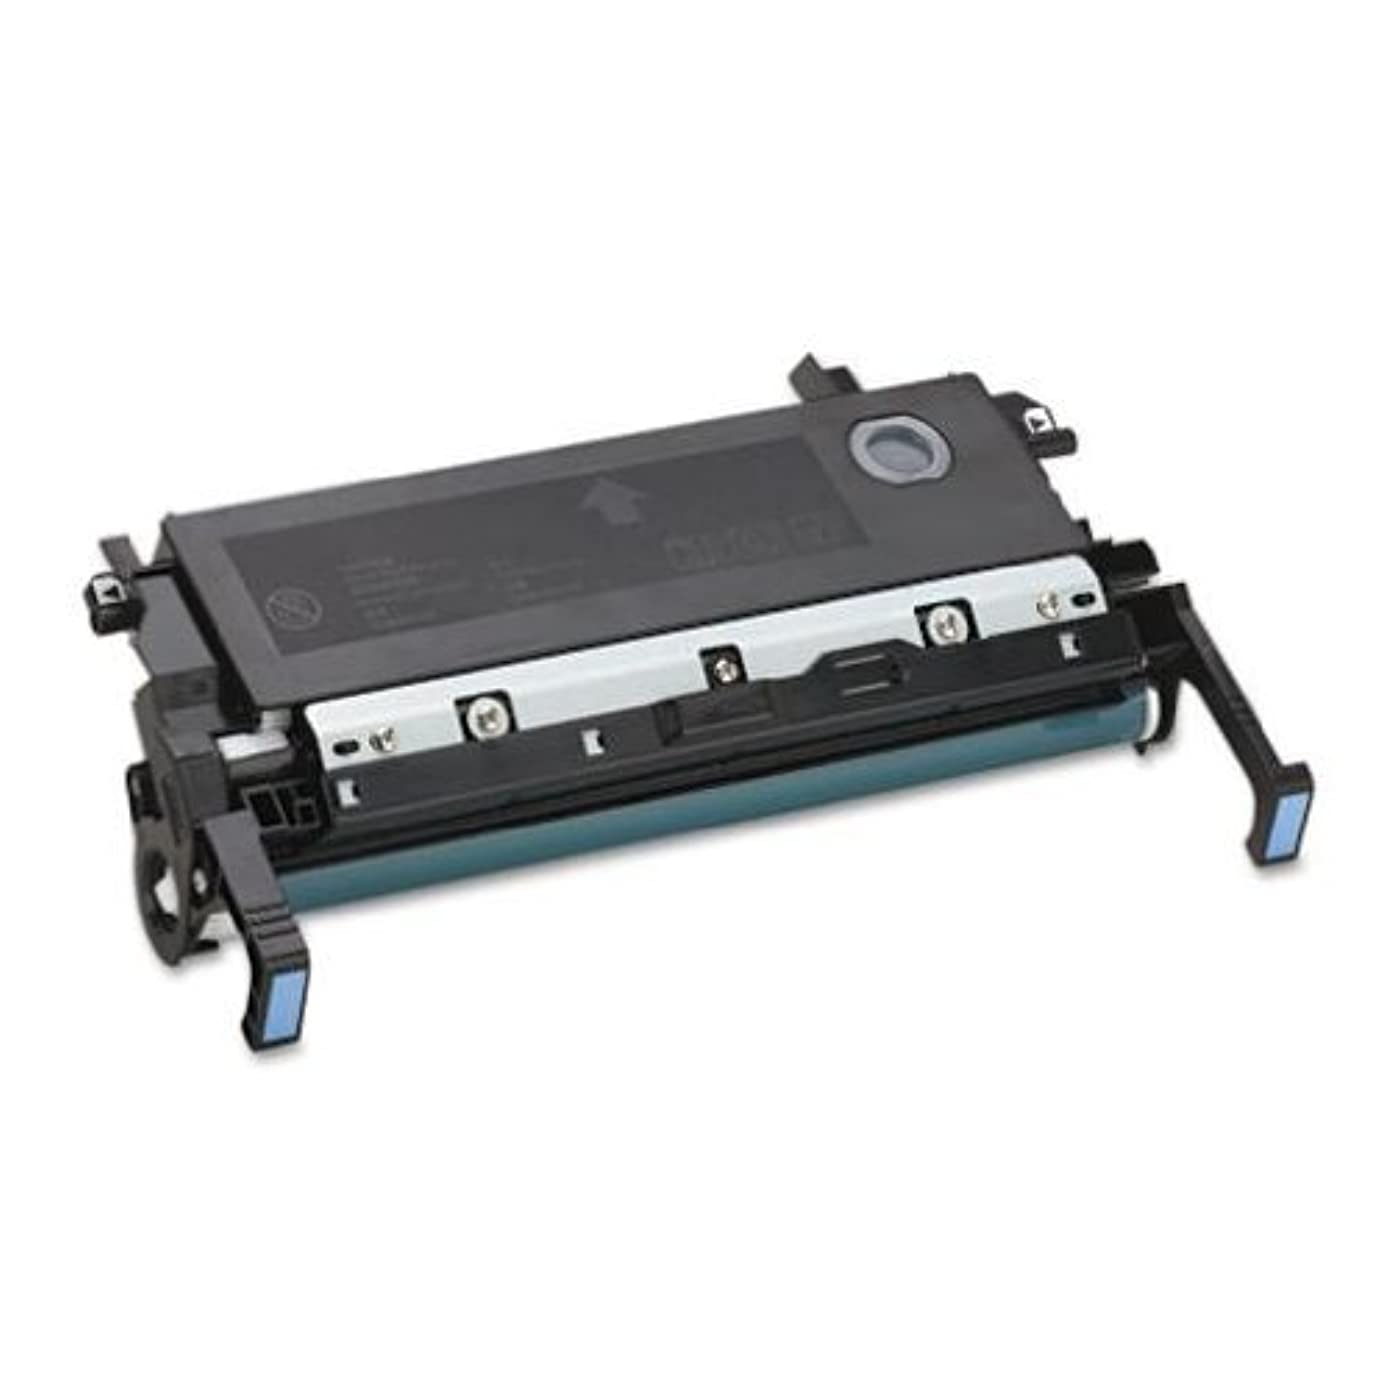 Canon GPR-22 Drum Unit for imageRUNNER 1023, 1023N and 1023IF Copiers Printer